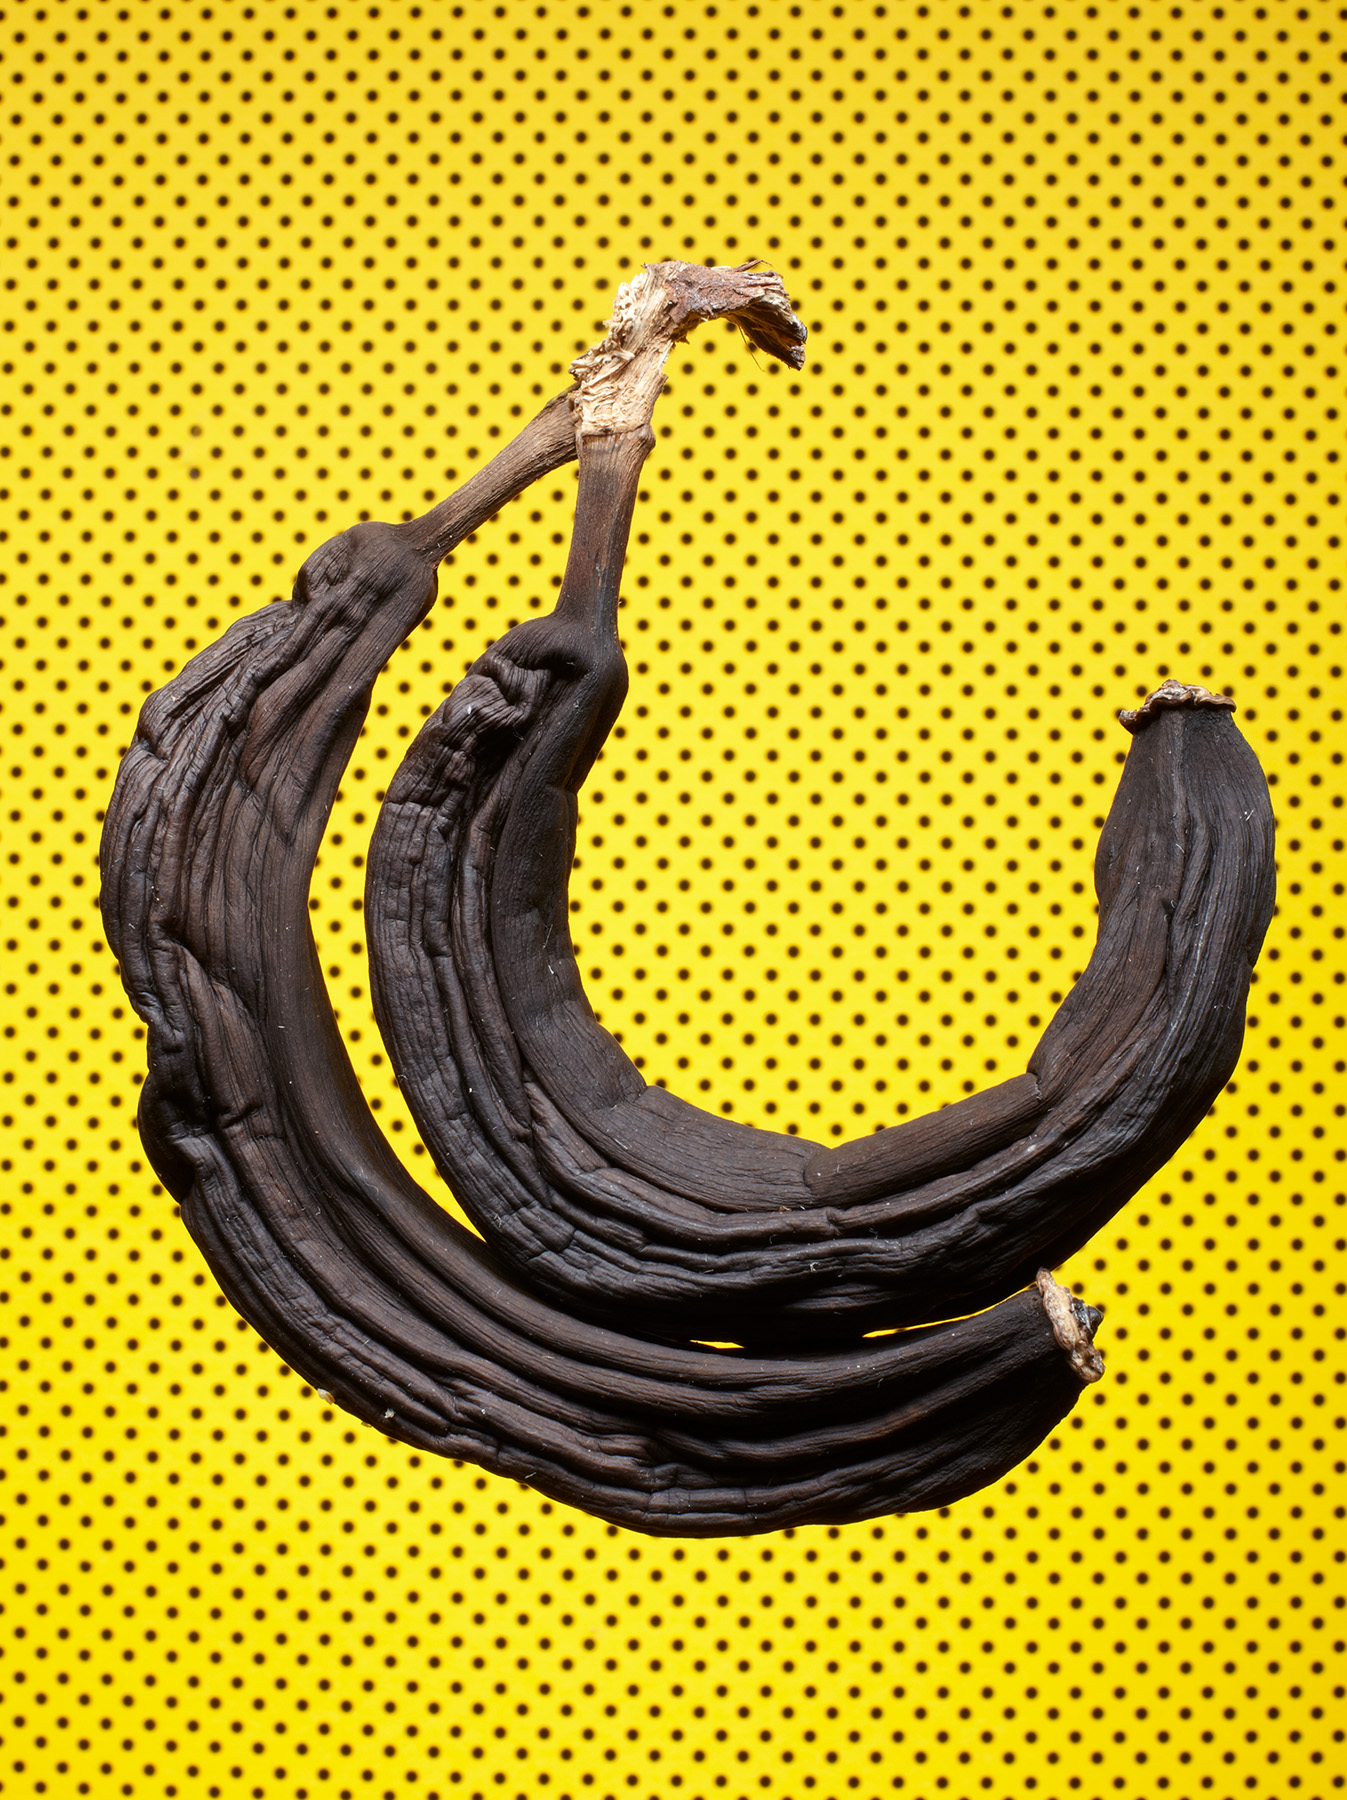 bananas_3857_crop